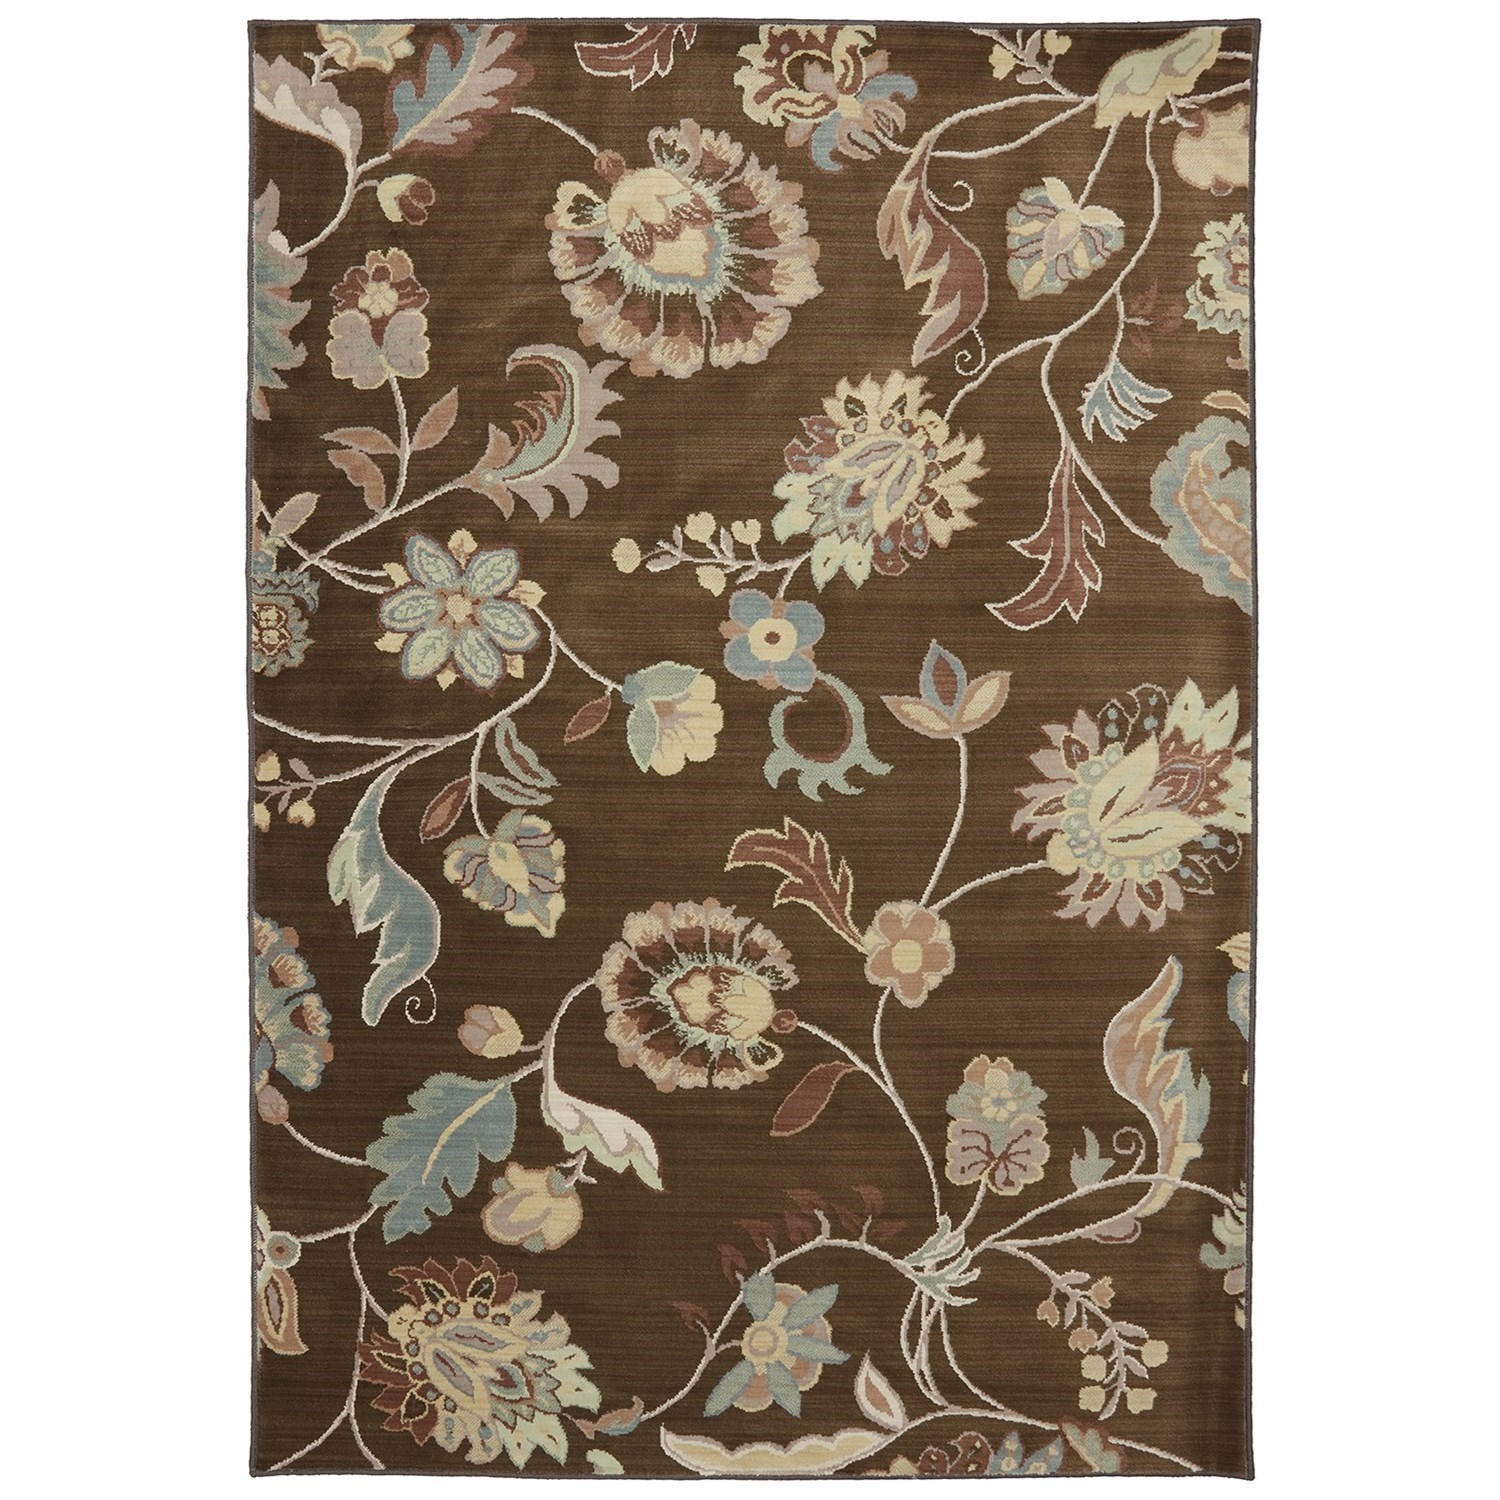 """Serenity 5' 3""""x7' 10"""" Sol Star Bison Area Rug by American Rug Craftsmen at Alison Craig Home Furnishings"""